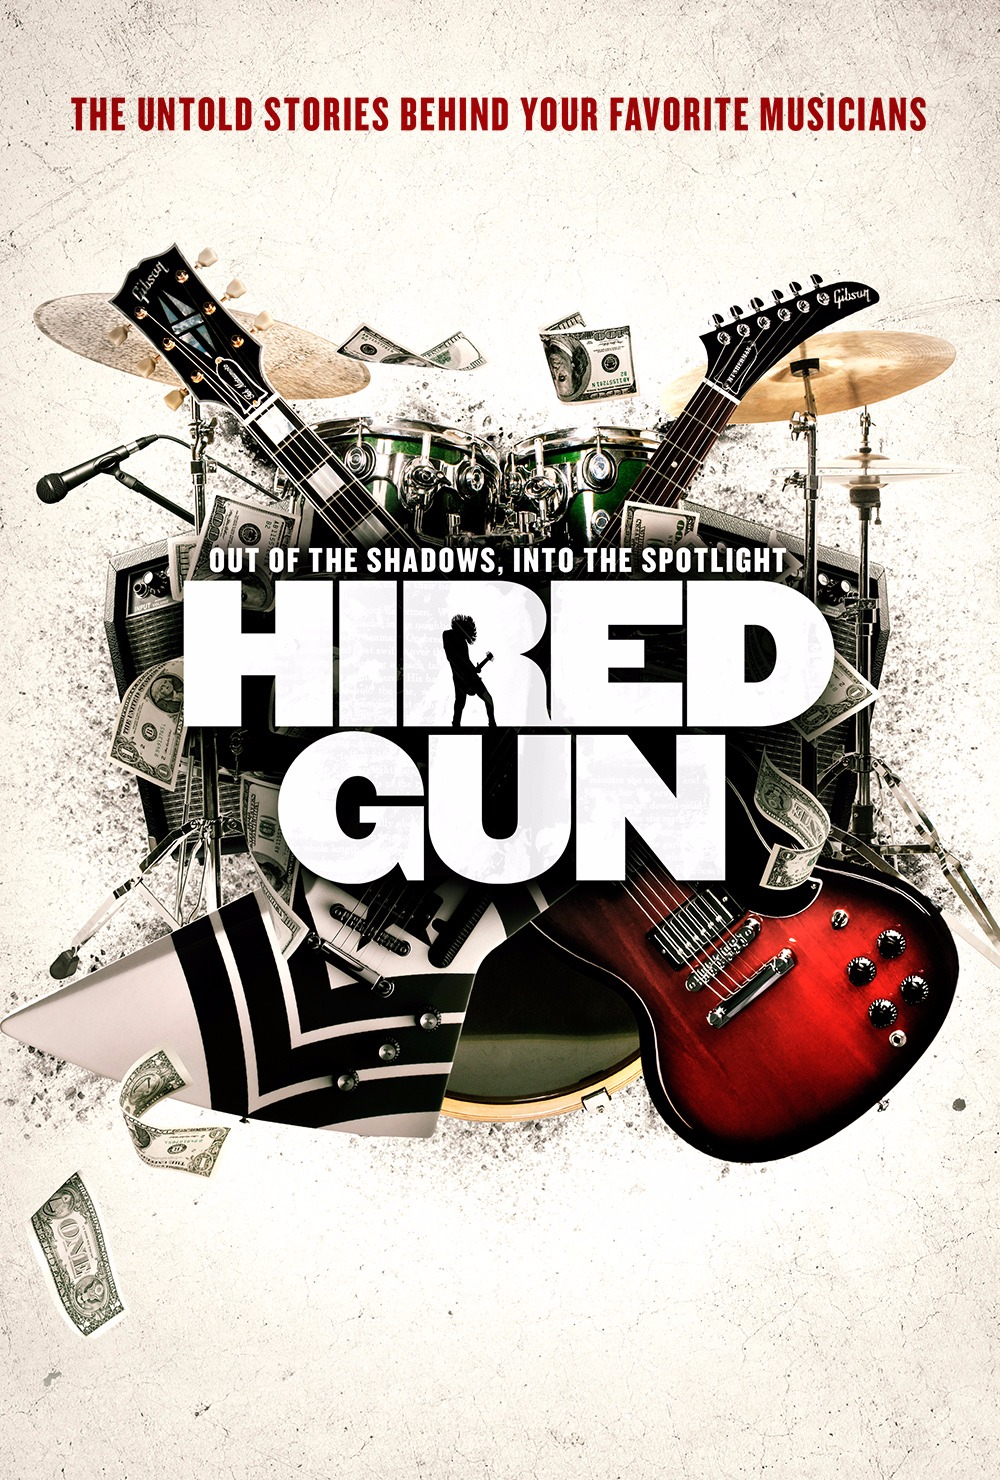 EVENTS: TONIGHT: Premier of Hired Gun – The Documentary: Stories of Musicians Behind the Stars